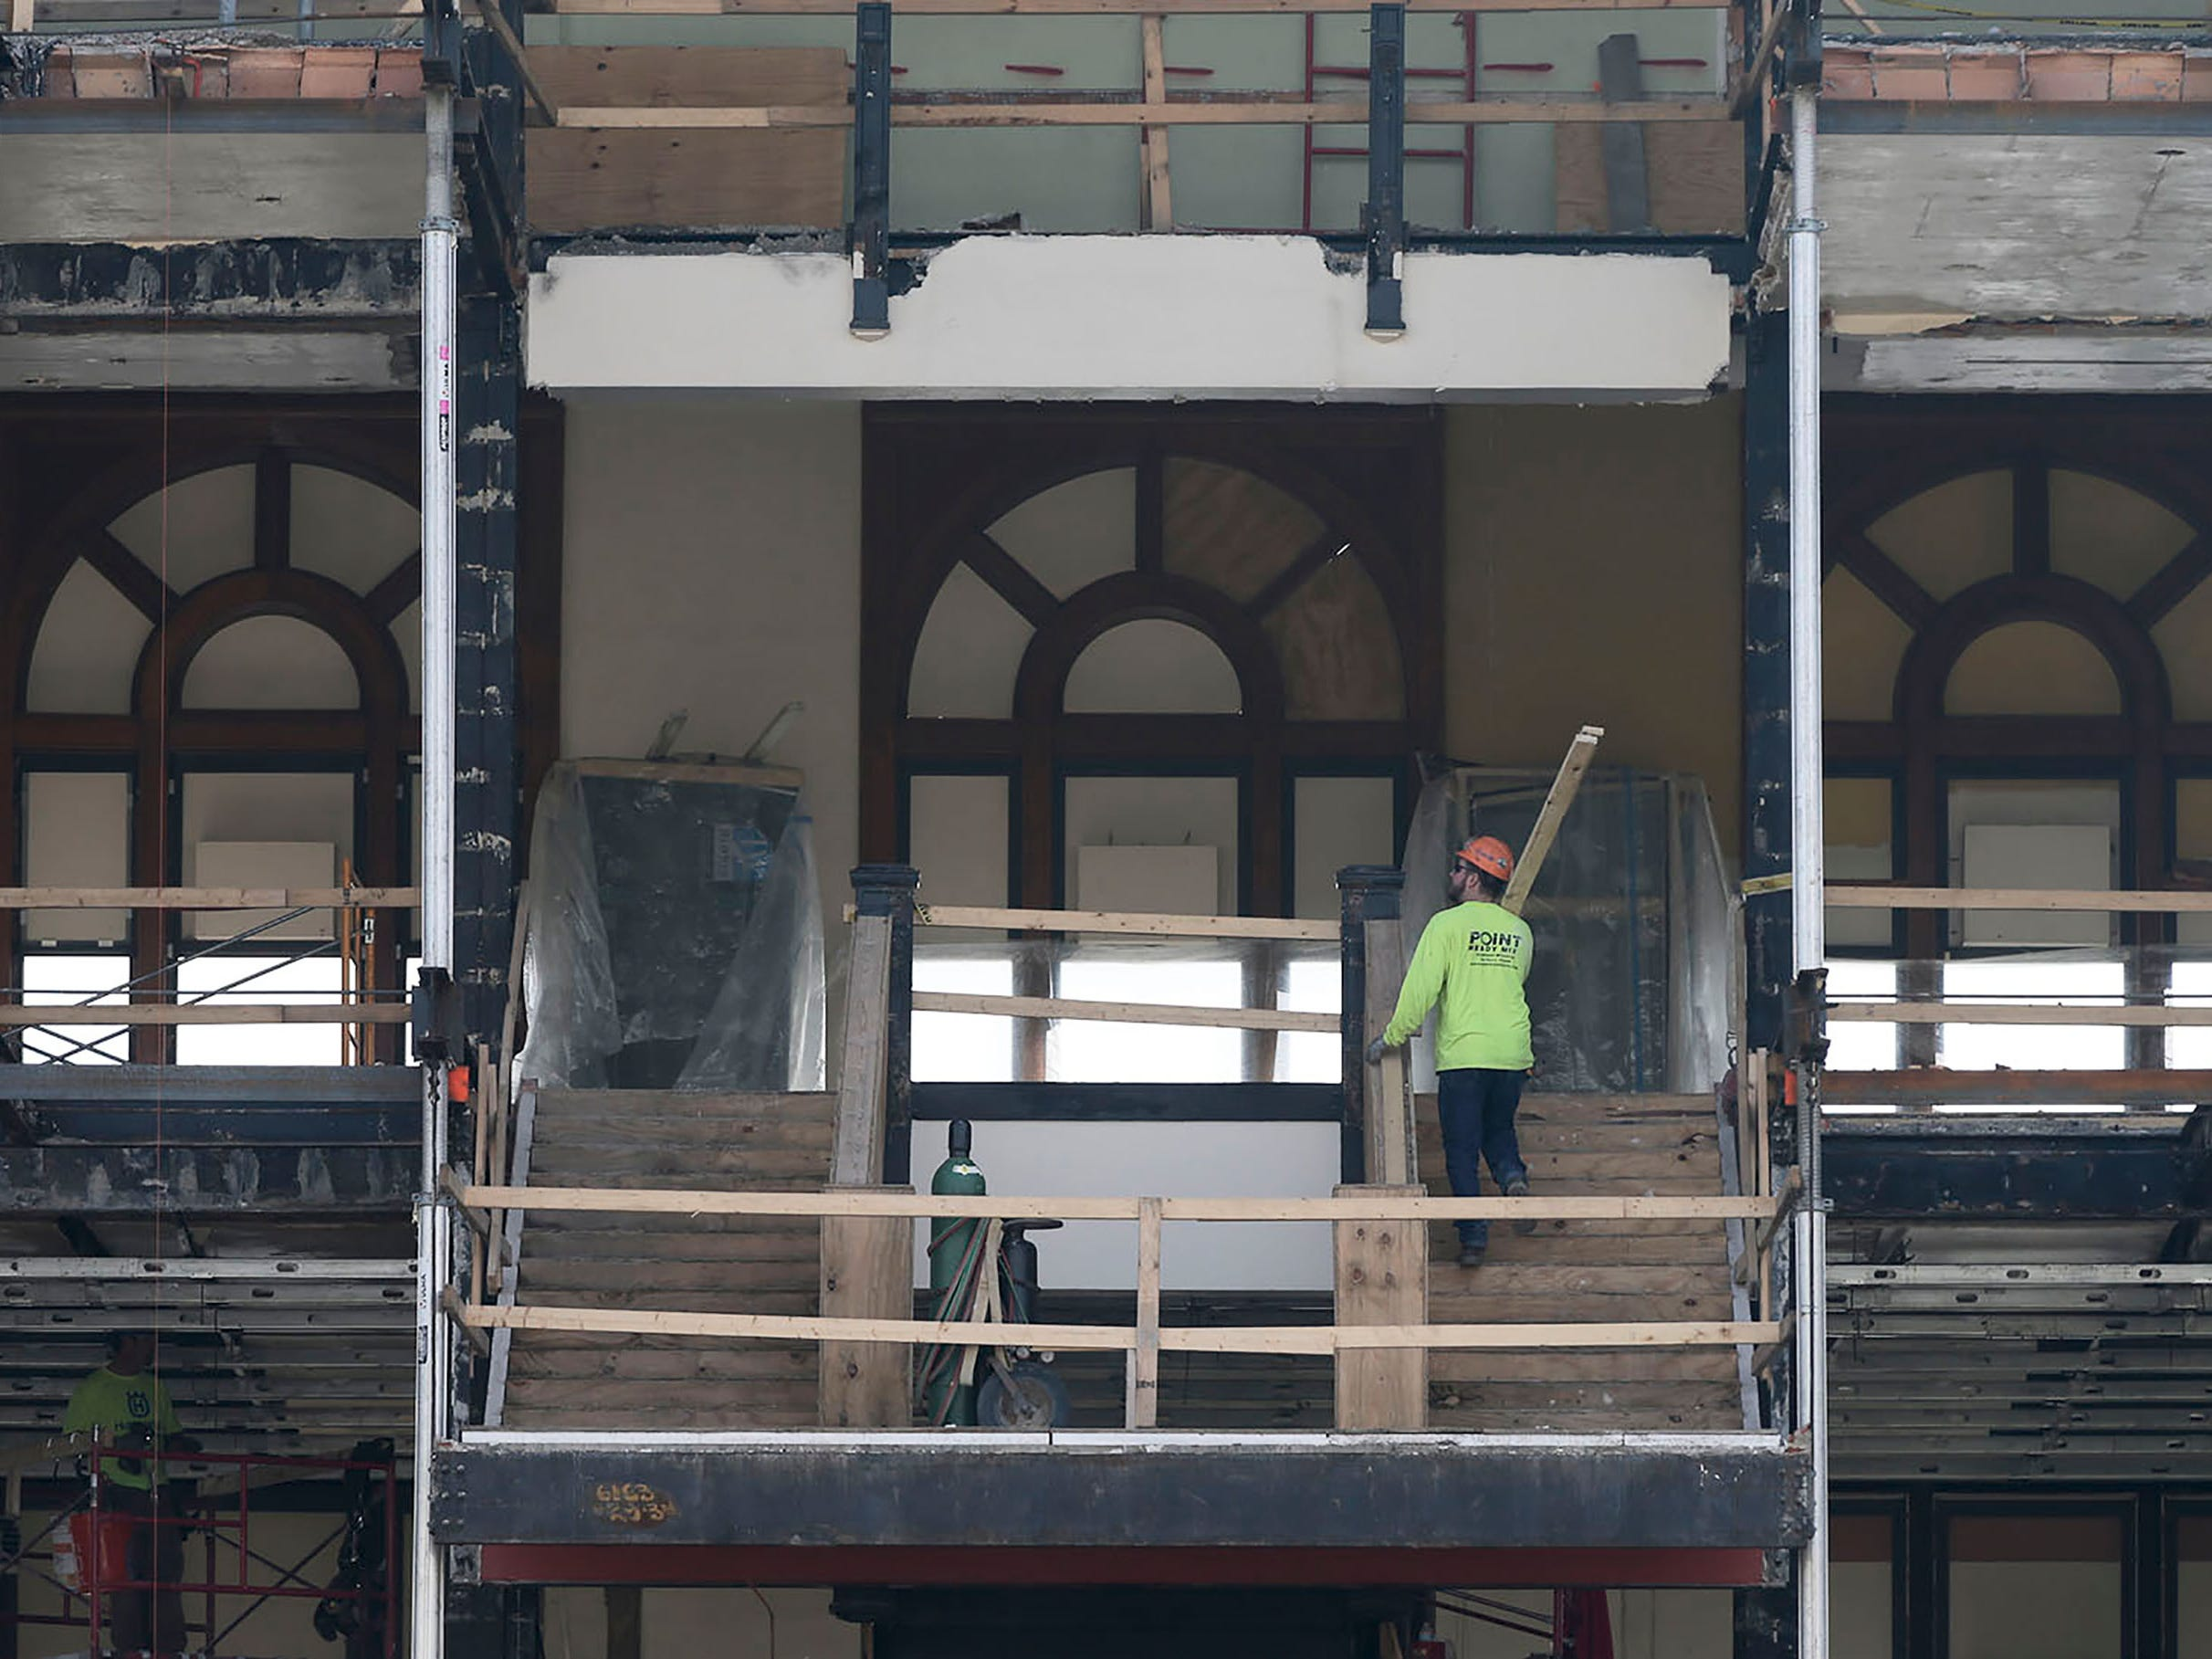 A Quasius worker climbs steps with a board over his shoulder on the north side of Sheboygan City Hall, Tuesday, October 9, 2018, in Sheboygan, Wis. The city is doing a multi-million dollar renovation of the structure.